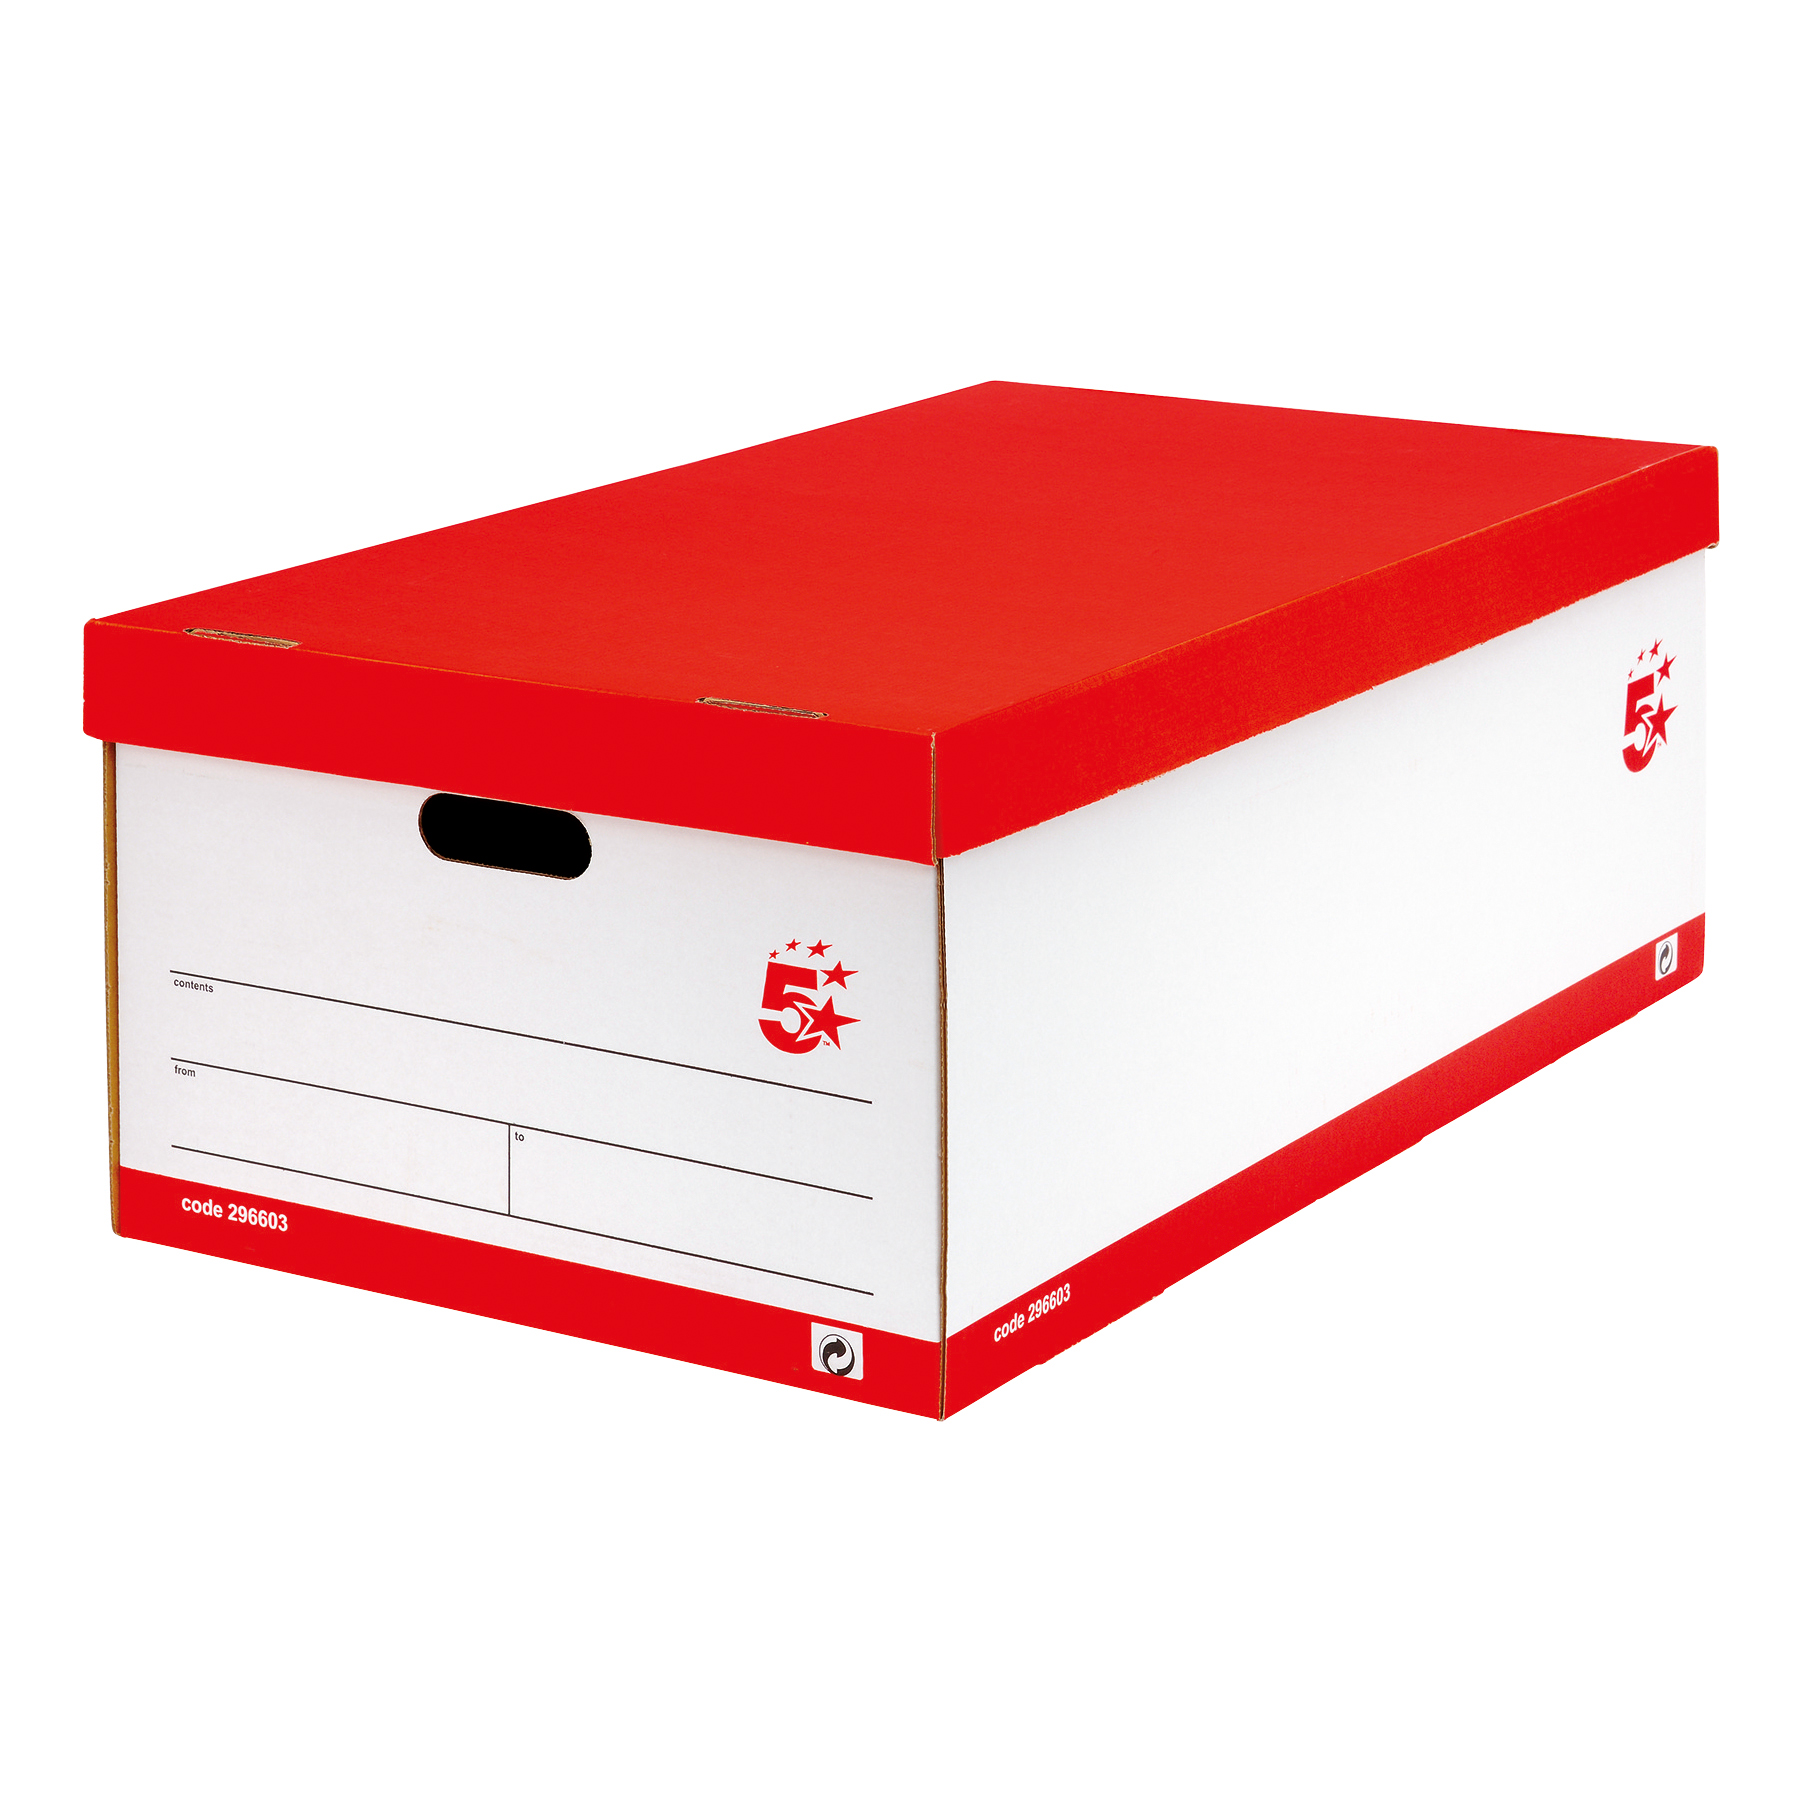 Storage Boxes 5 Star Office FSC Jumbo Storage Boxwith Lid Self-assembly W431xD725xH277mm Red & White Pack 5